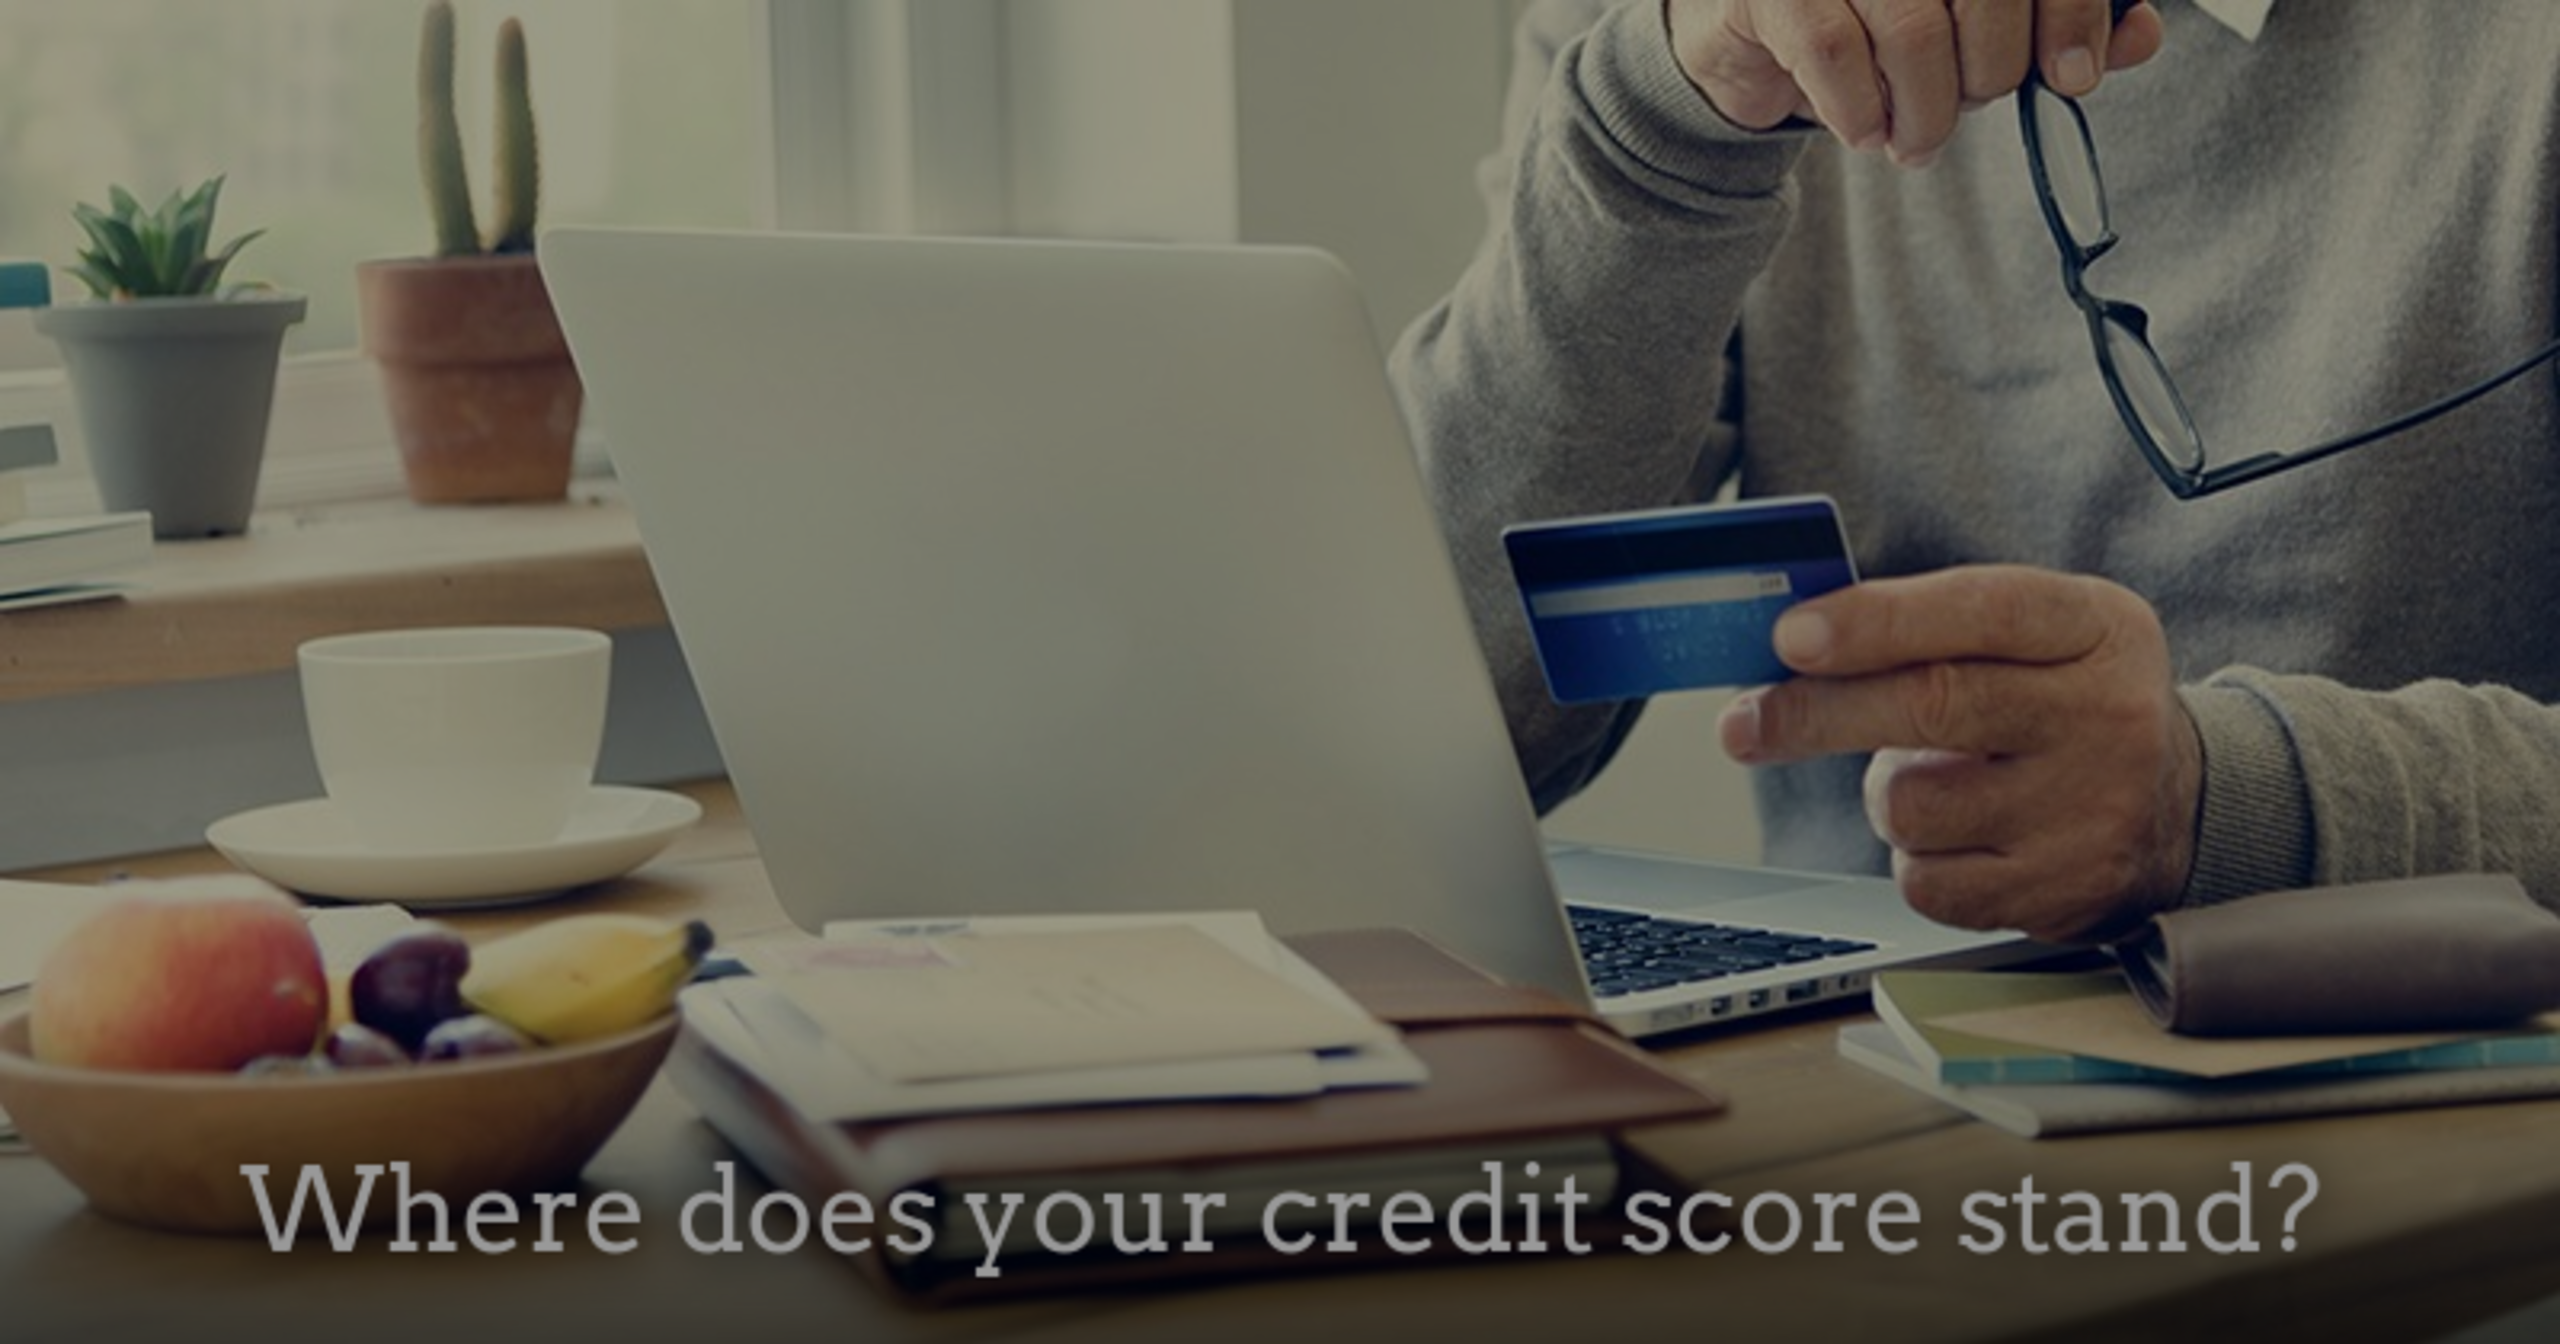 Where does you credit score stand?